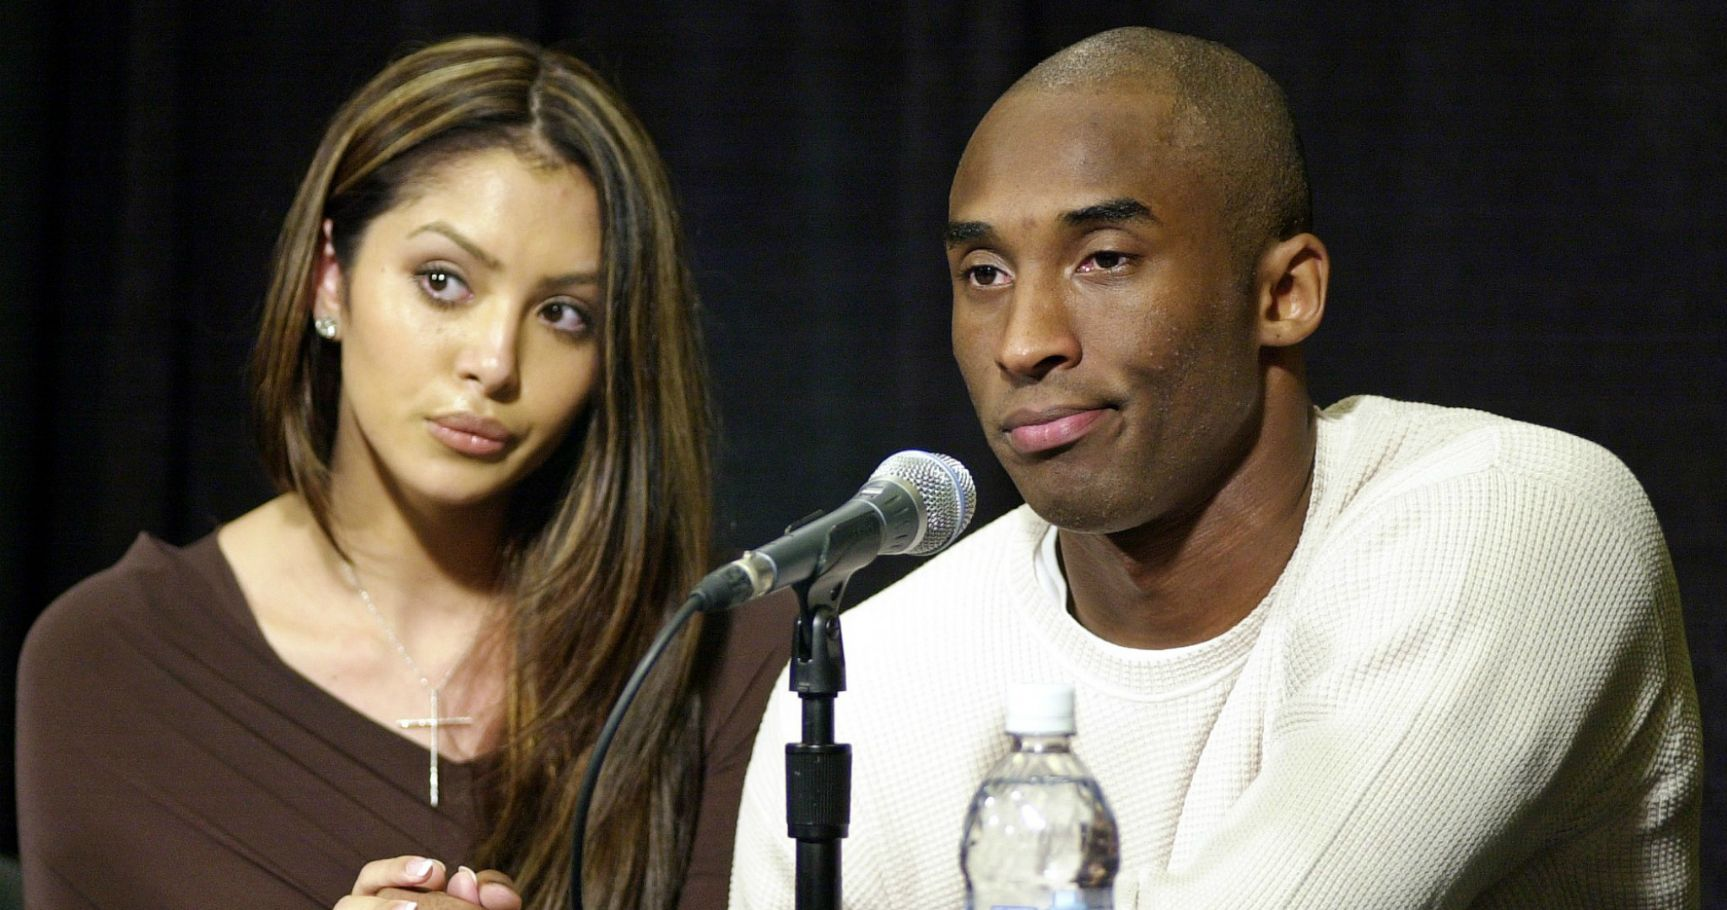 10 Richest Athletes Involved in Shocking Scandals